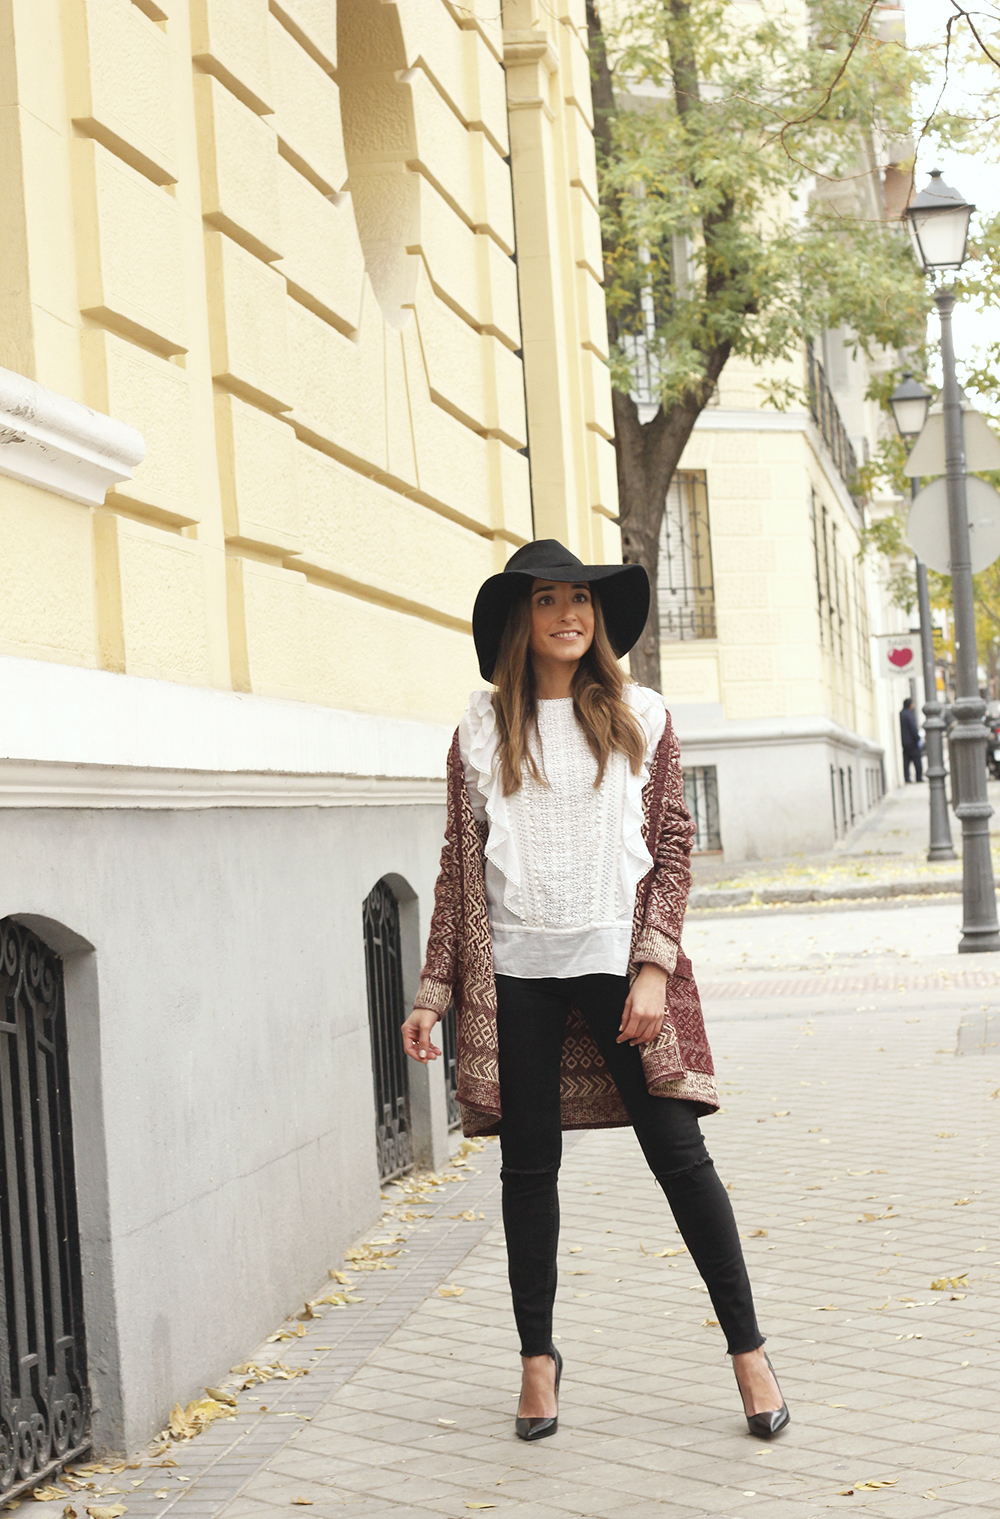 white blouse cardigan black jeans hat heels mdm fashion casual outfit05